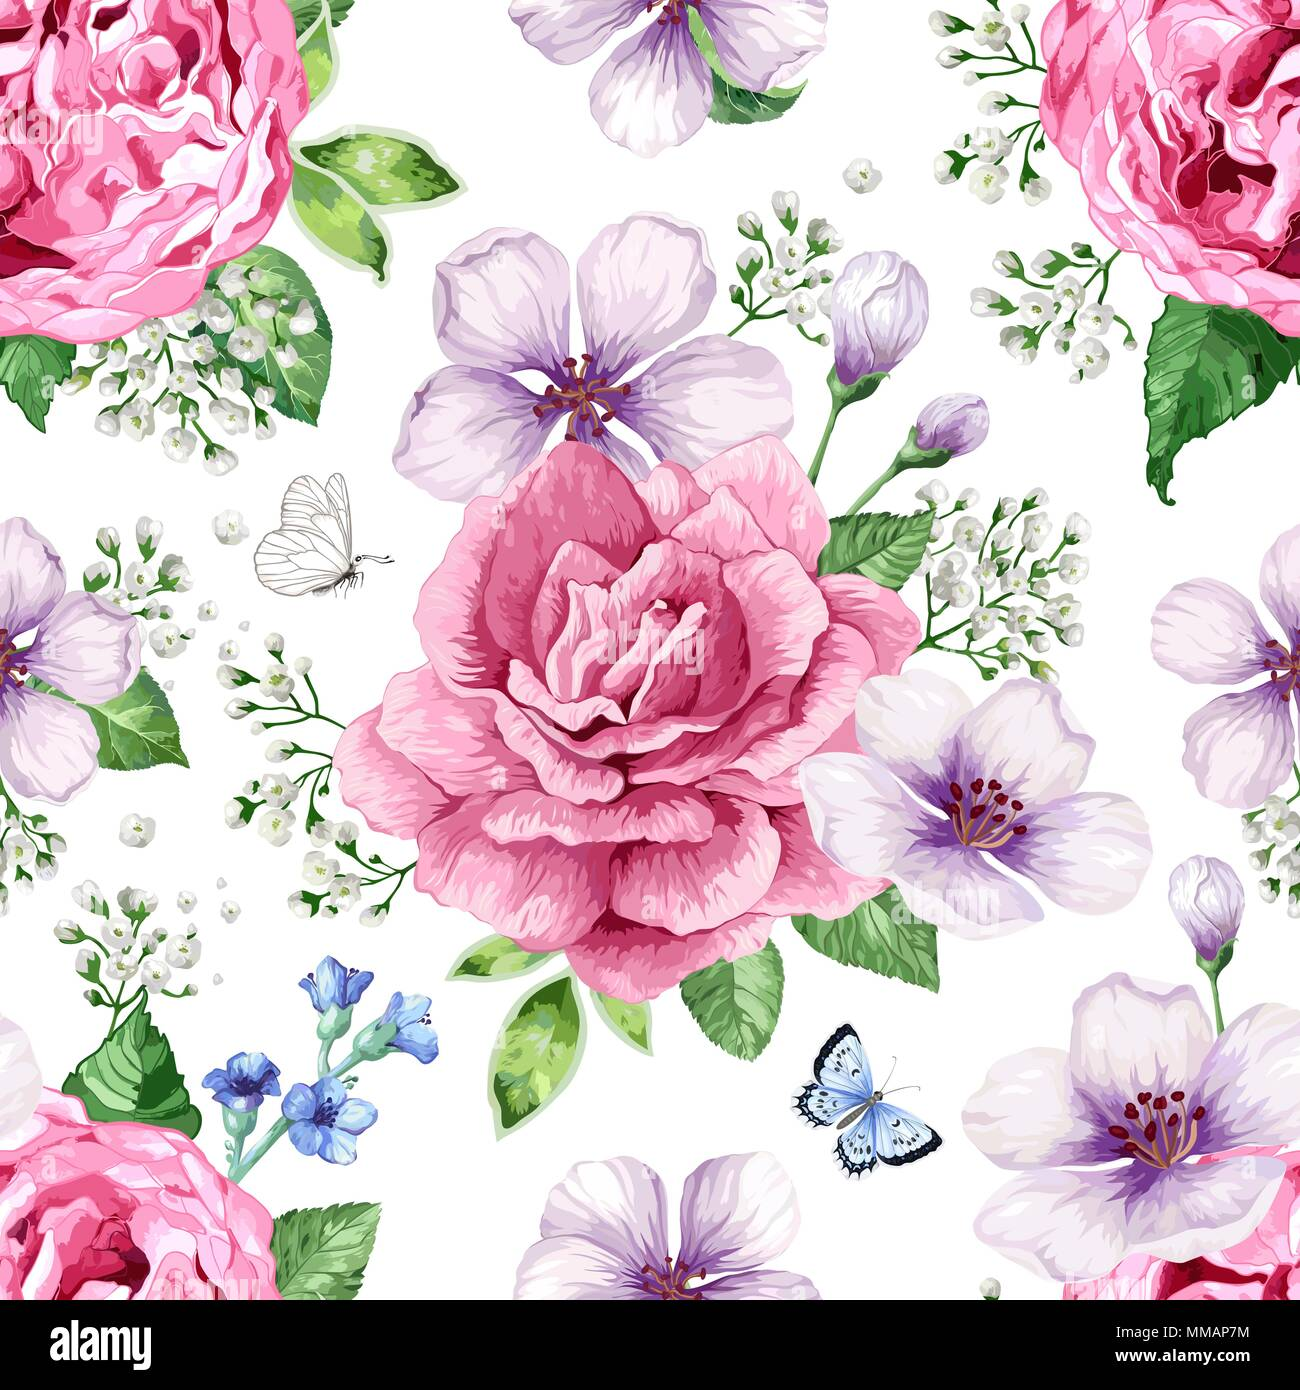 Apple Tree Roses Hydrangea Flowers Petals And Leaves In Watercolor